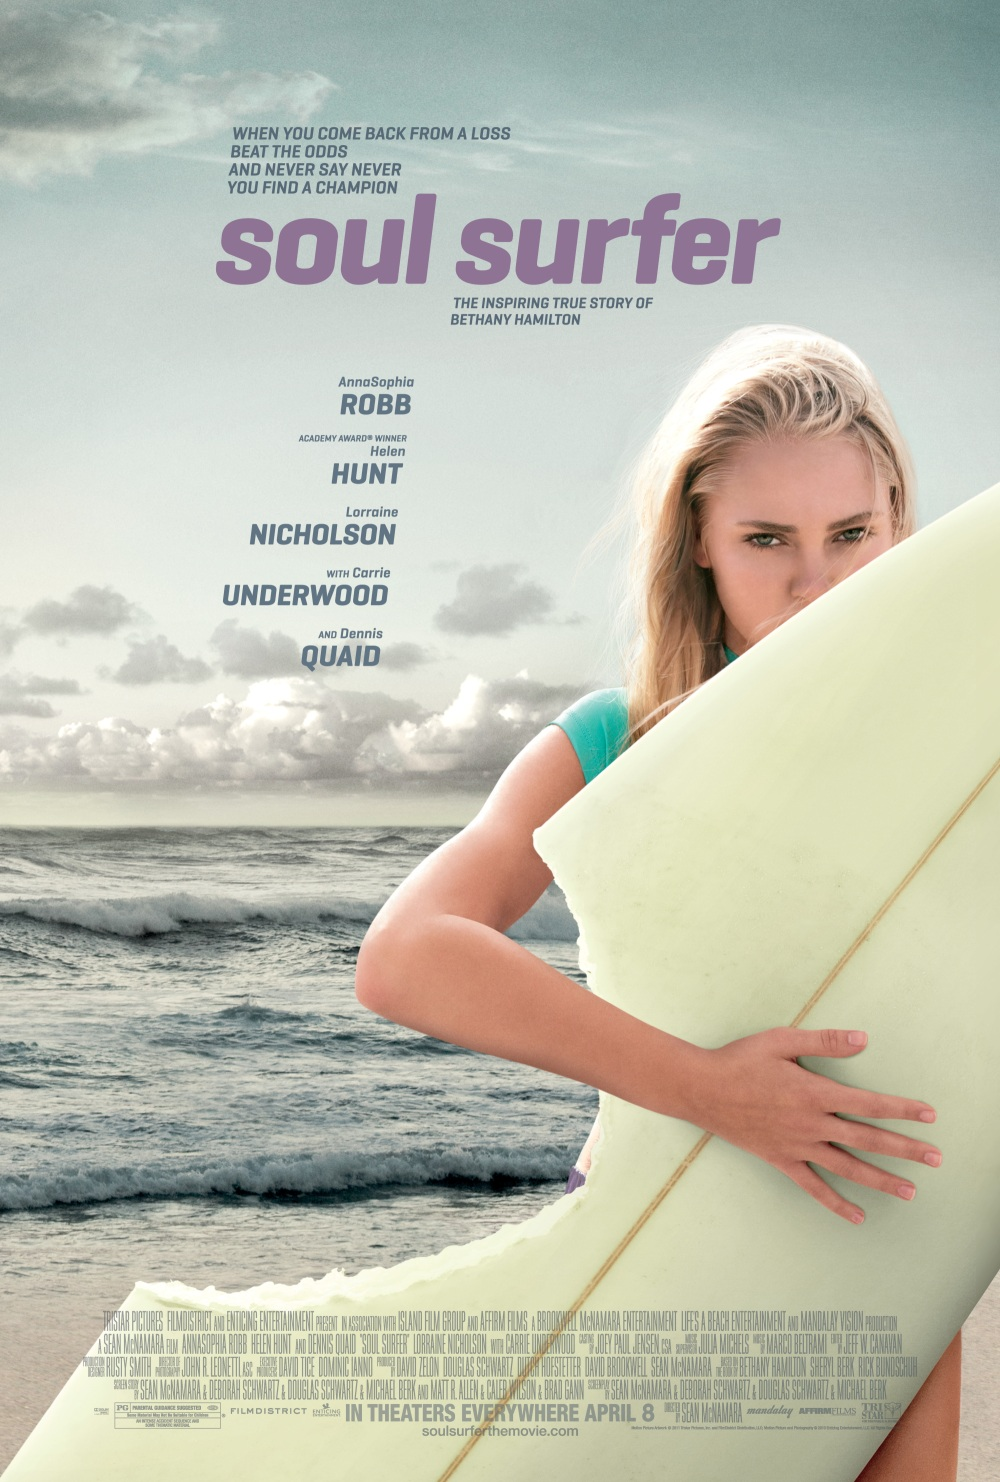 The Girl with the Flower Tattoo: Soul Surfer